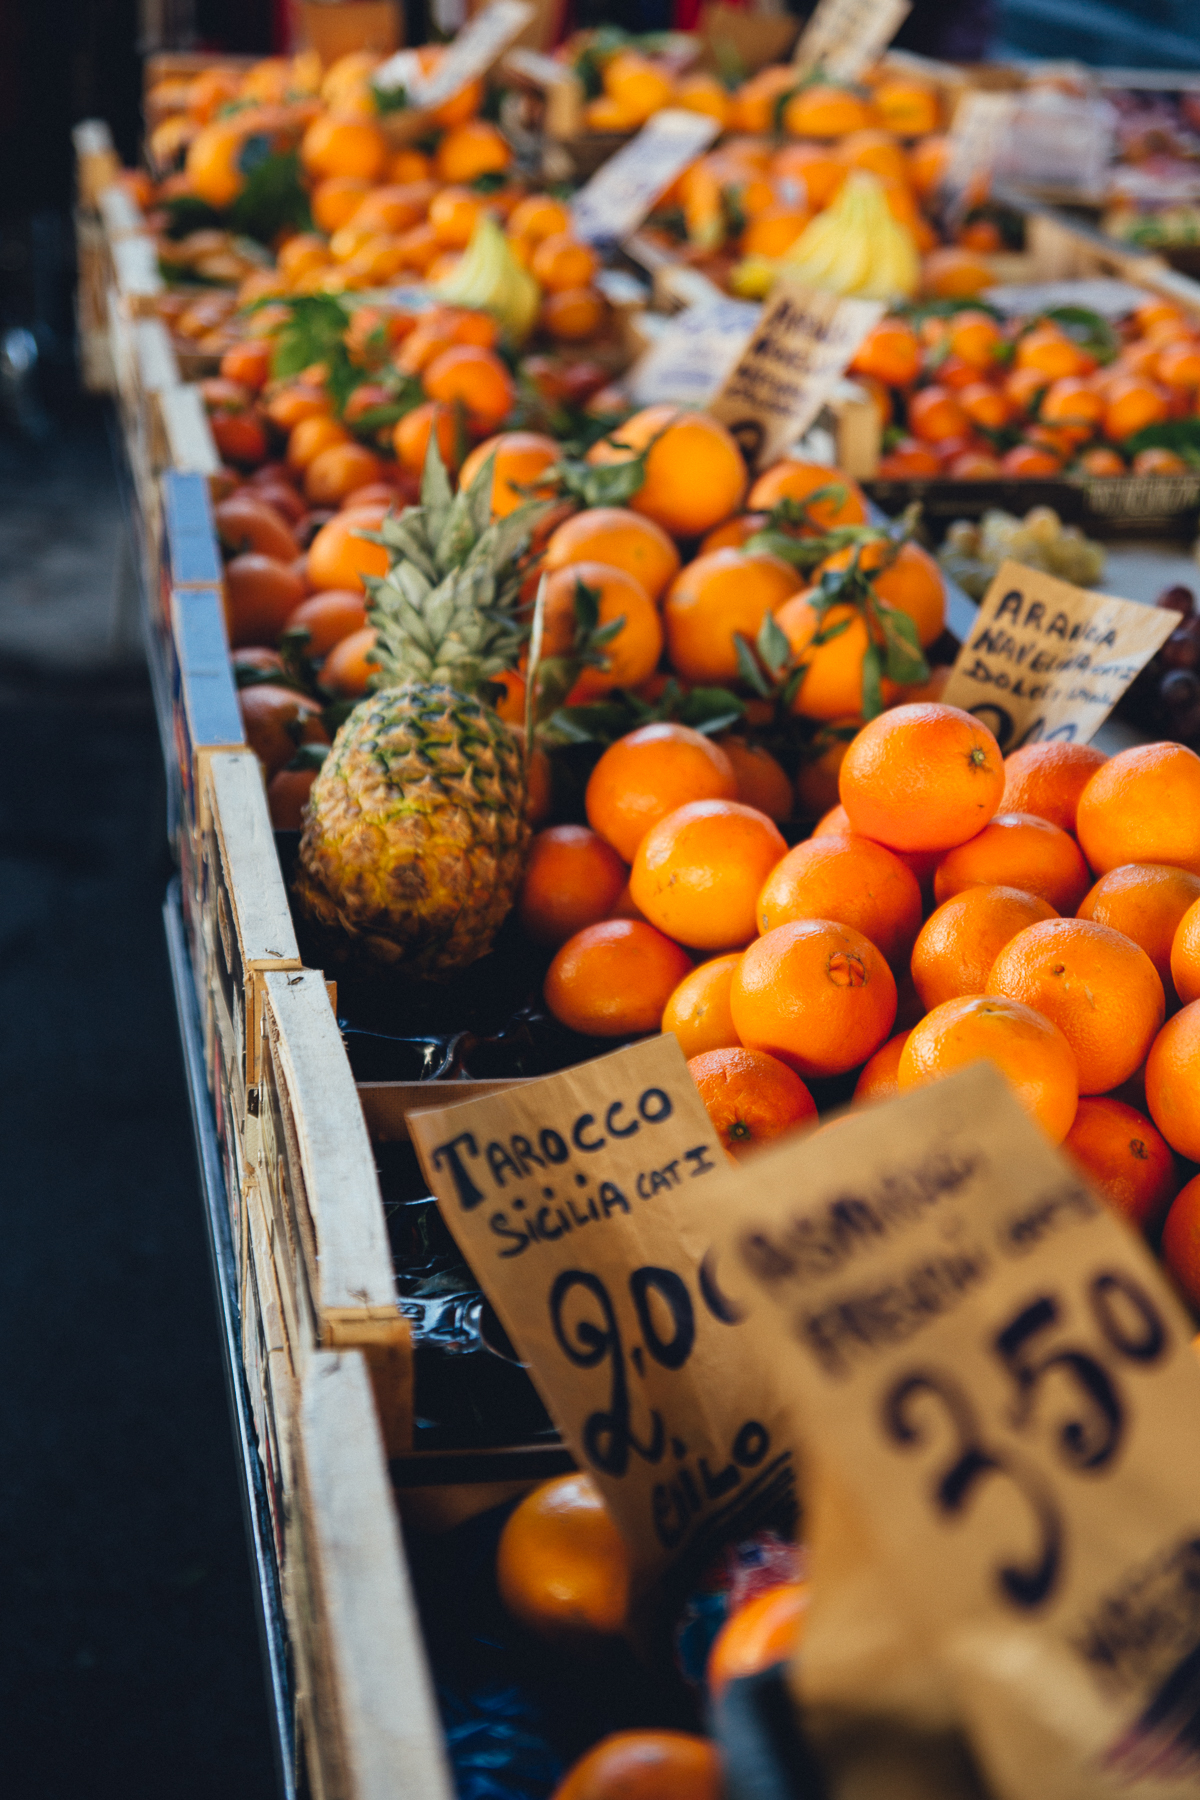 Farmer's Market in Florence, Italy, February 2017